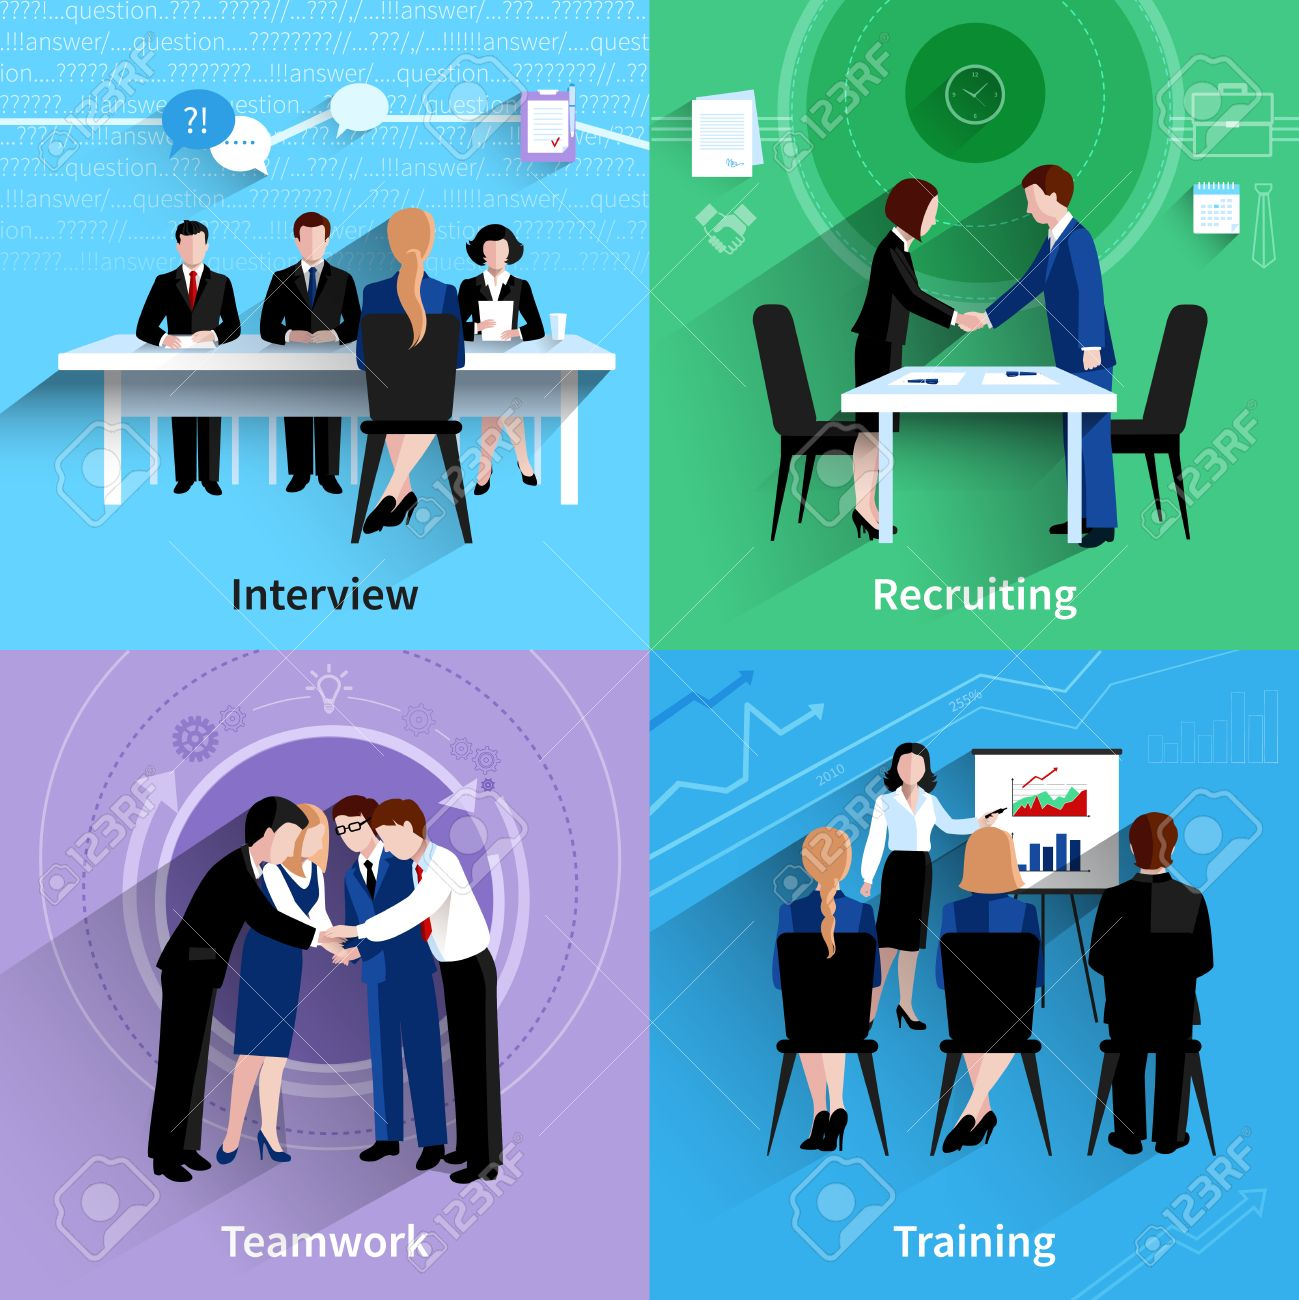 human resources interview recruiting and teamwork training 4 human resources interview recruiting and teamwork training 4 flat icons square composition banner abstract isolated vector